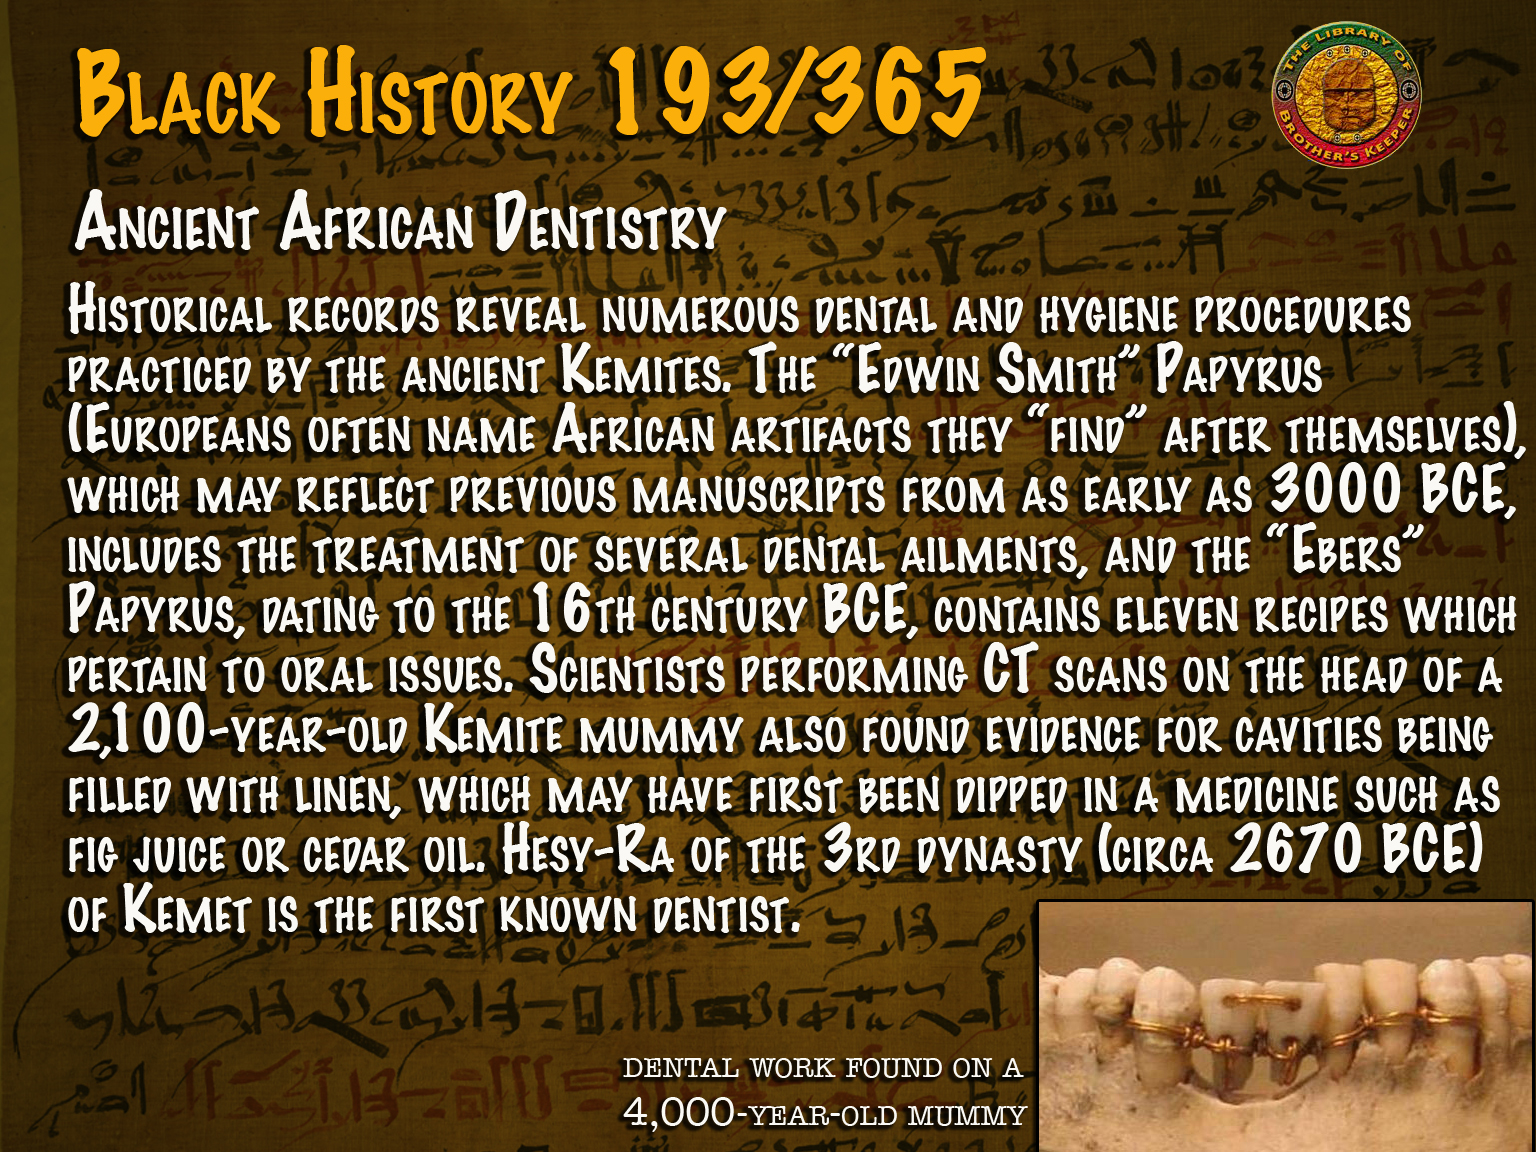 Ancient African Dentistry